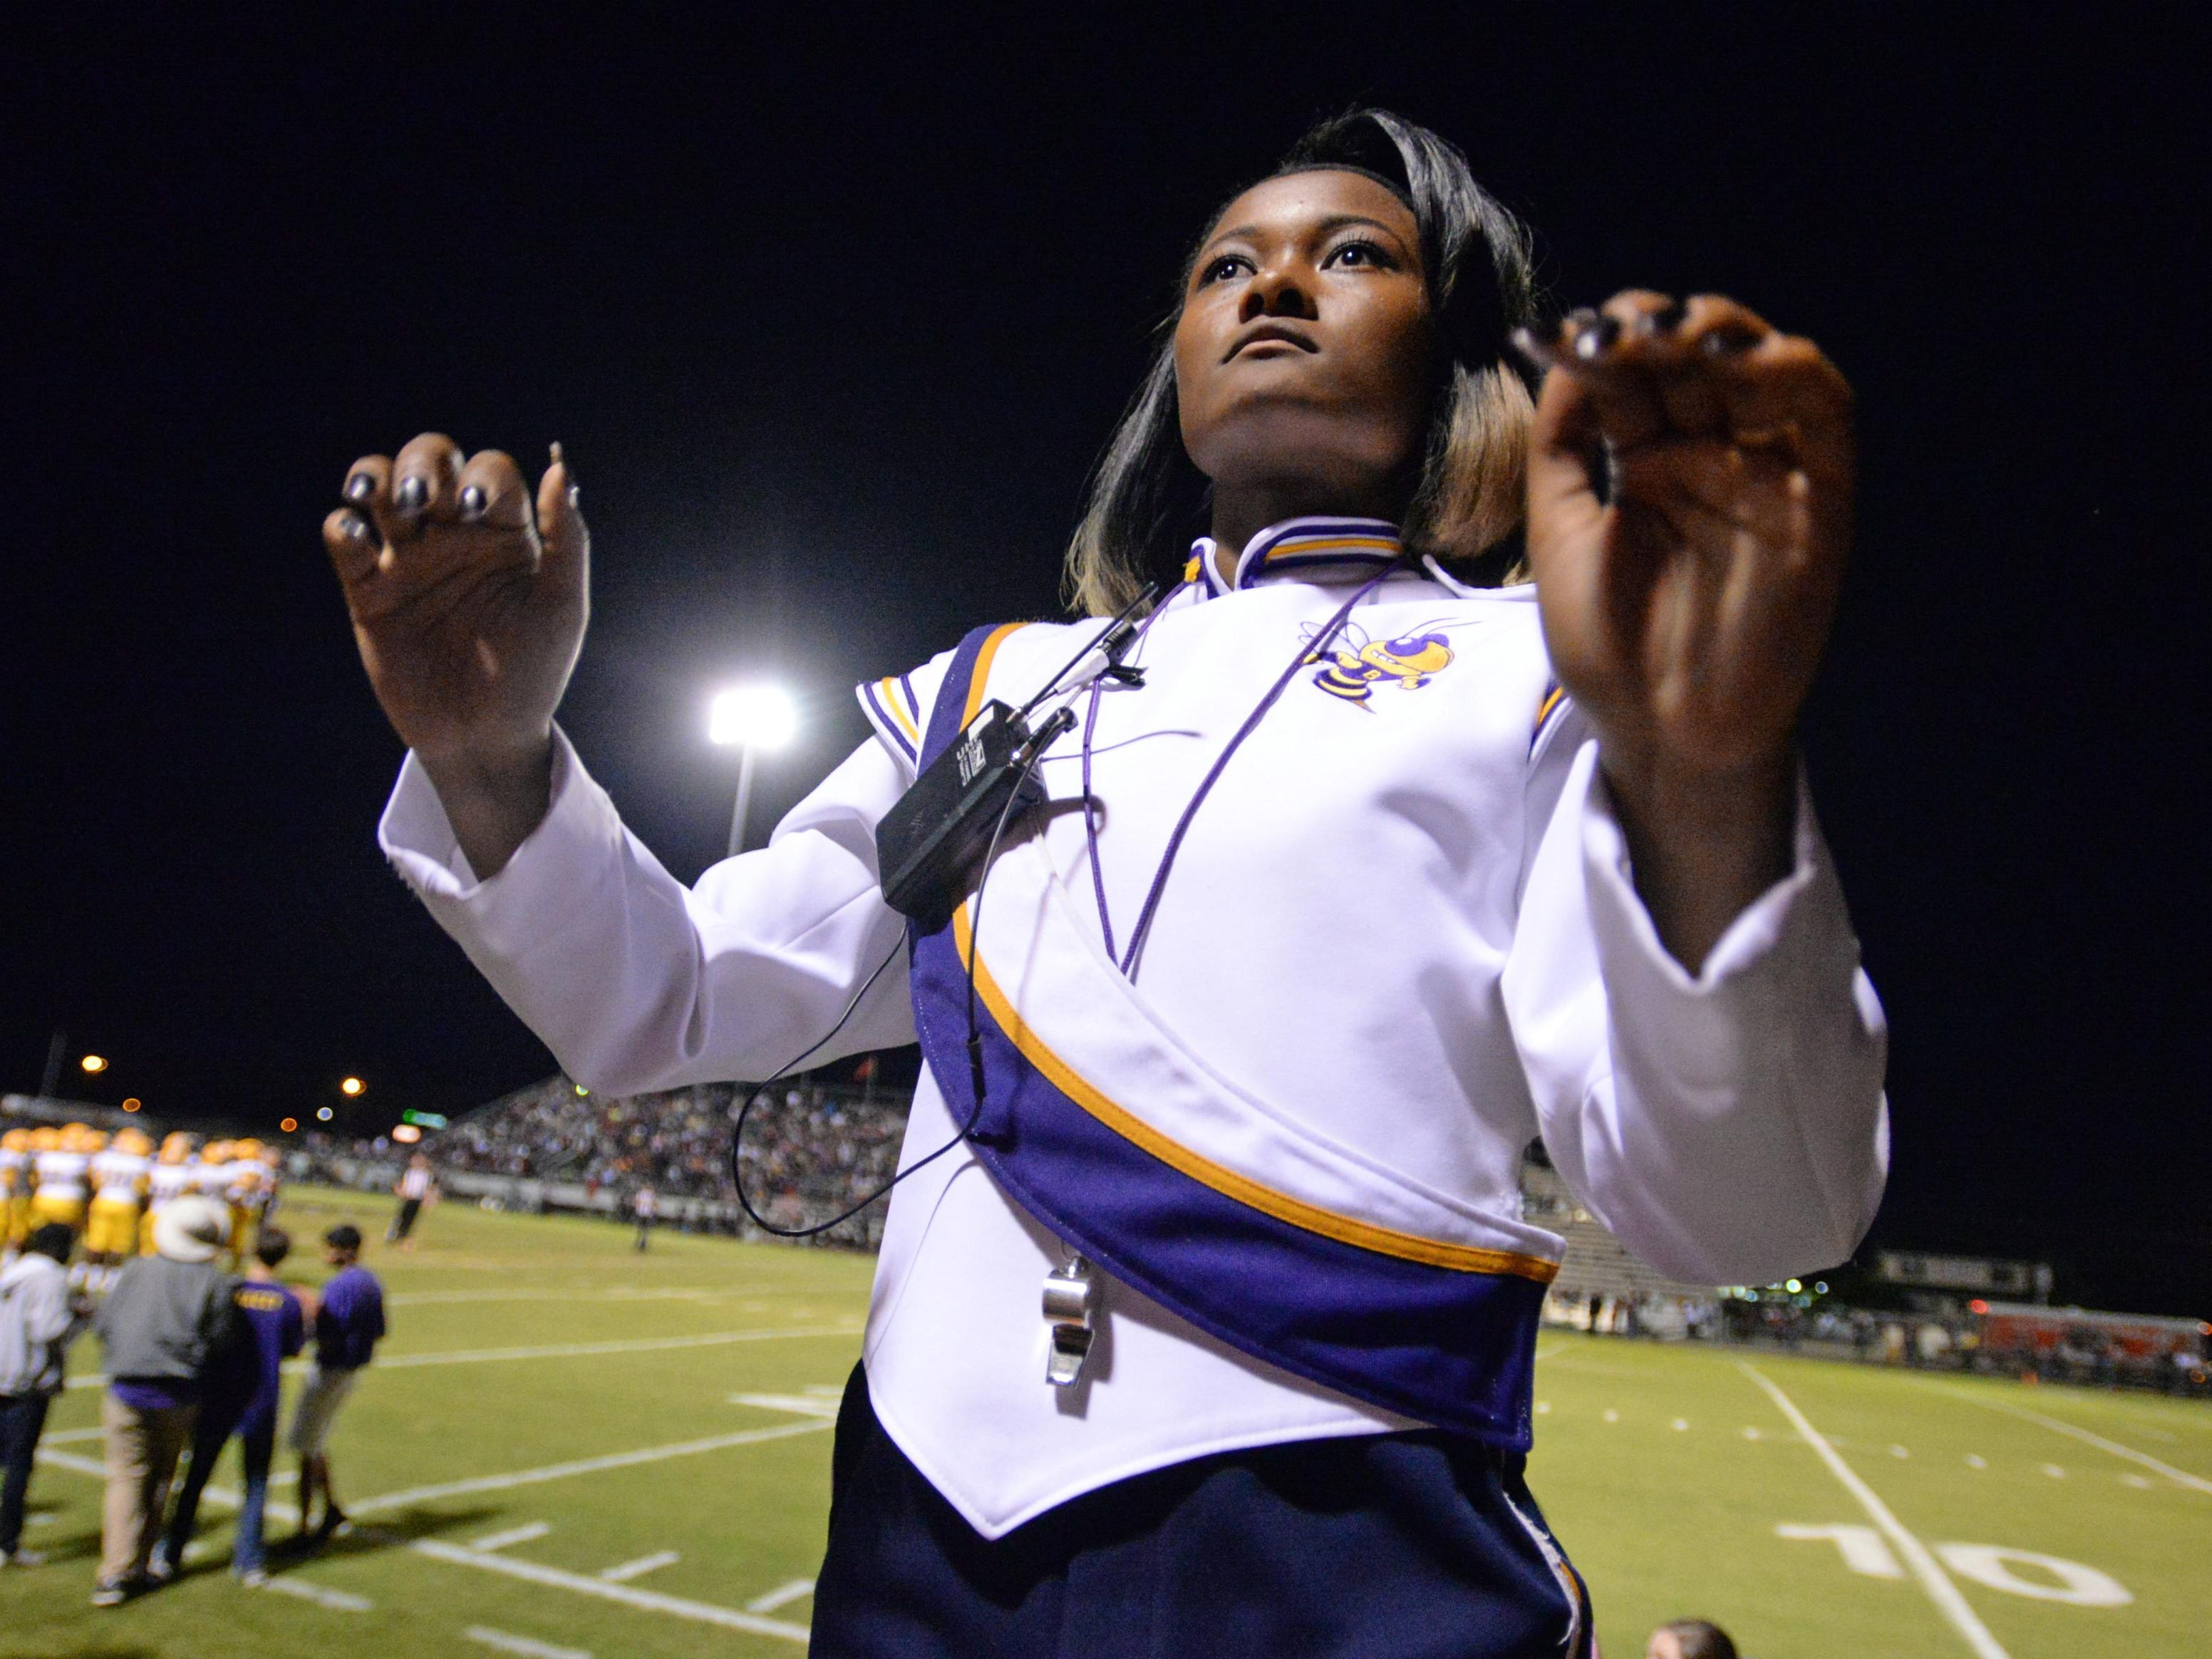 Antionette Van leads the C.E. Byrd marching band rally their team during a recent road game against Parkway.